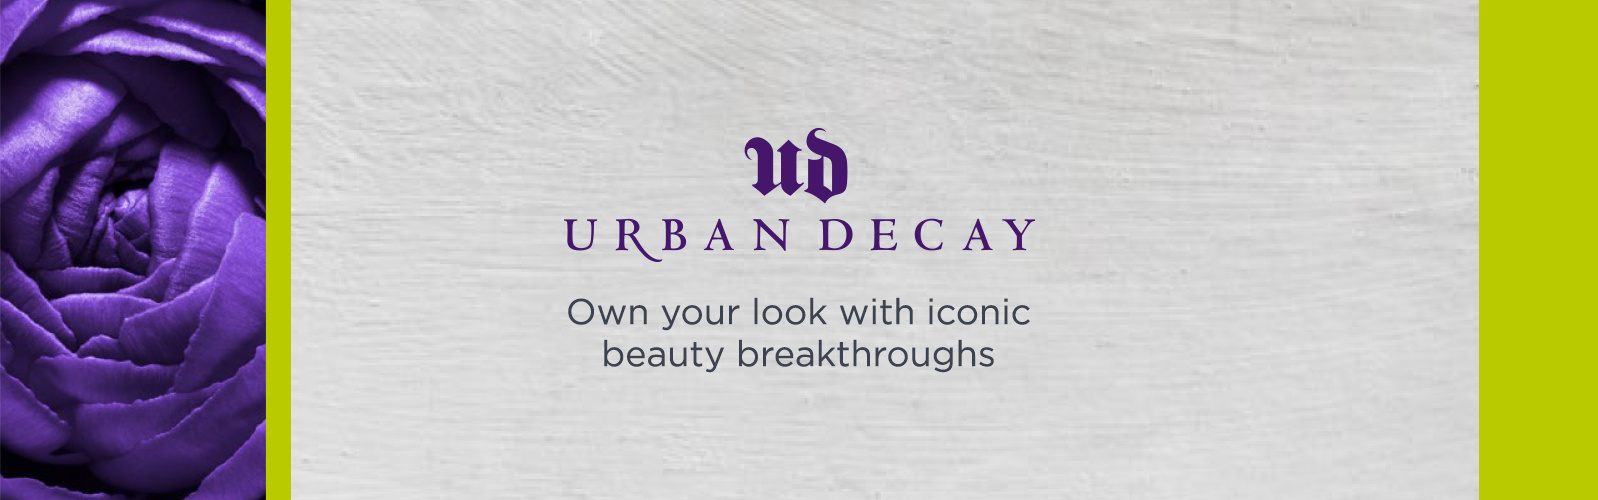 Urban Decay. Own your look with iconic beauty breakthroughs